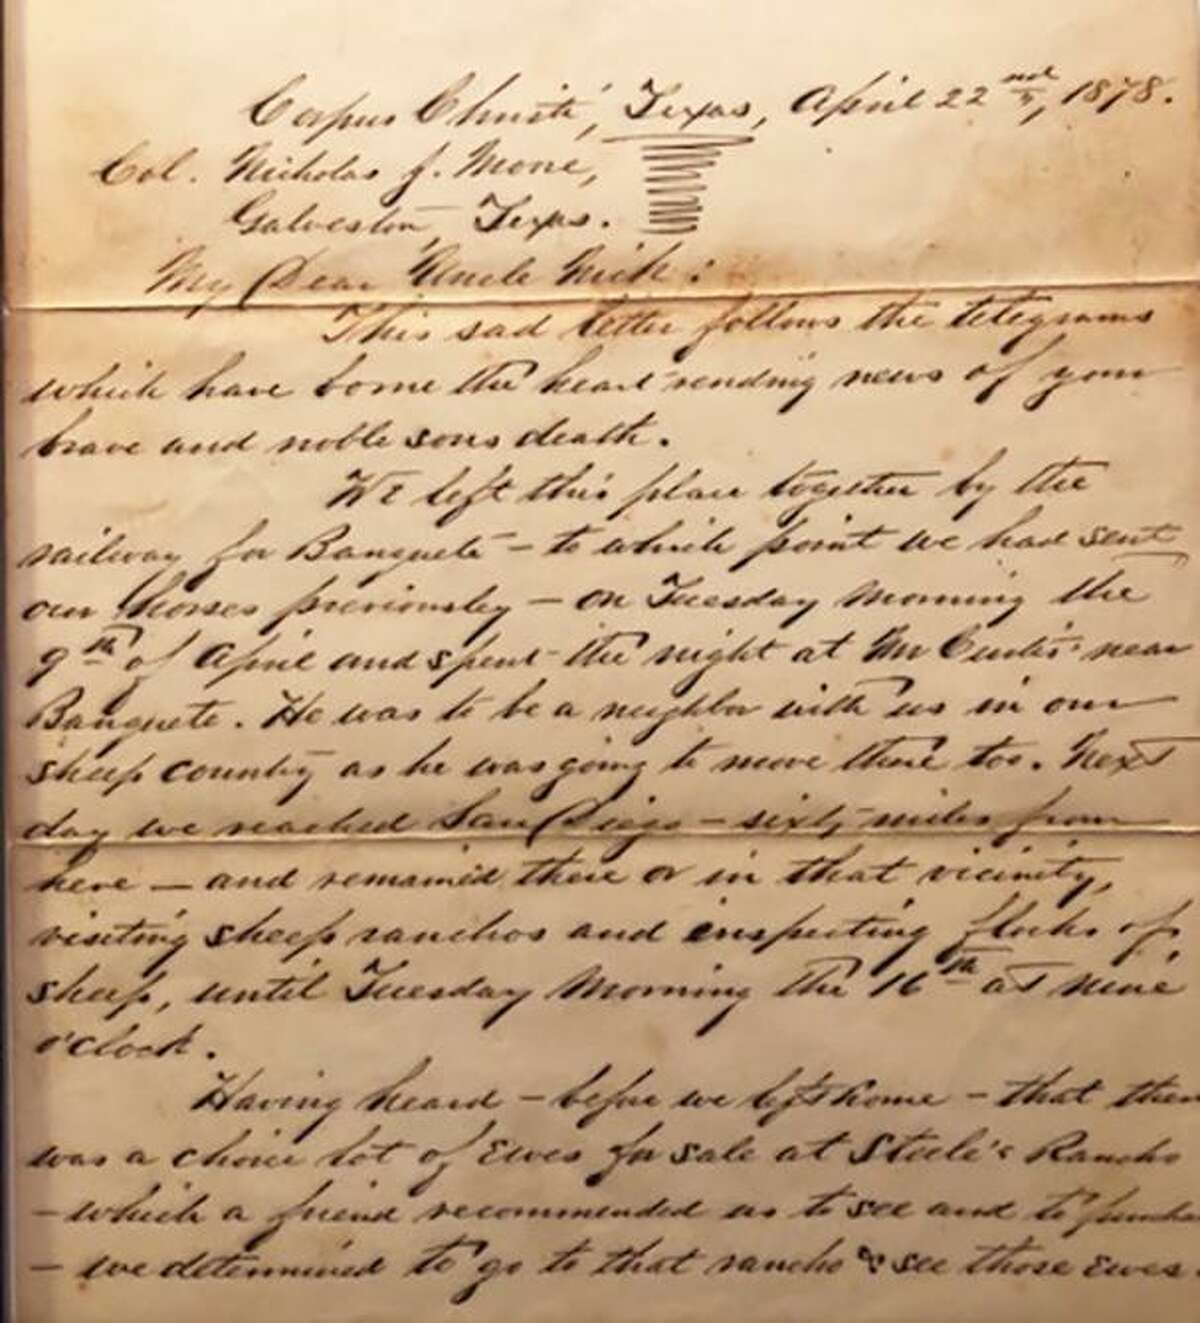 John Kelley's great-great grandmother was the sister of Fred Moore, the young man killed in Southh Texas during the Mexican and Indian Raid of 1878. Kelley is in possession of the poignant letter E.C. Moore wrote to Fred Moore's father.